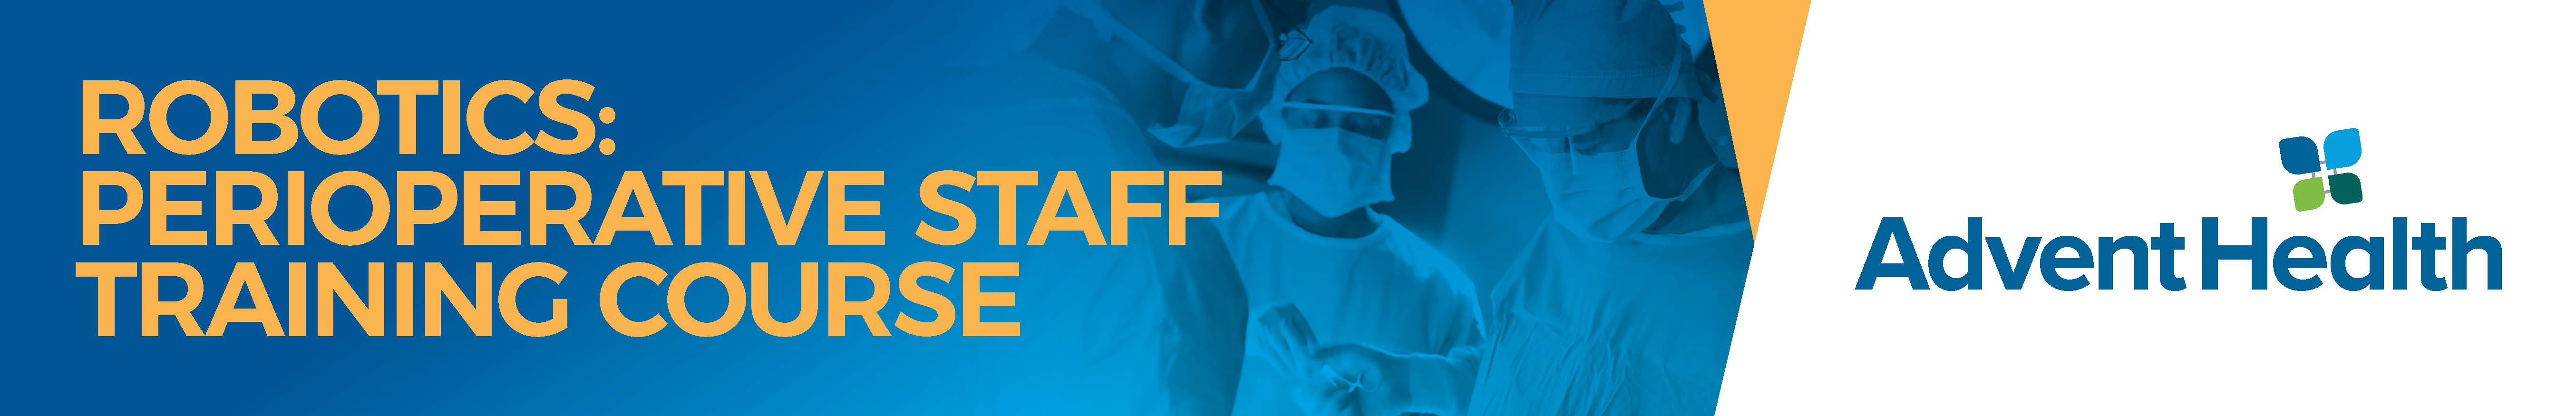 2020 Robotics: Perioperative Staff Training Course Oct 12-14 Banner